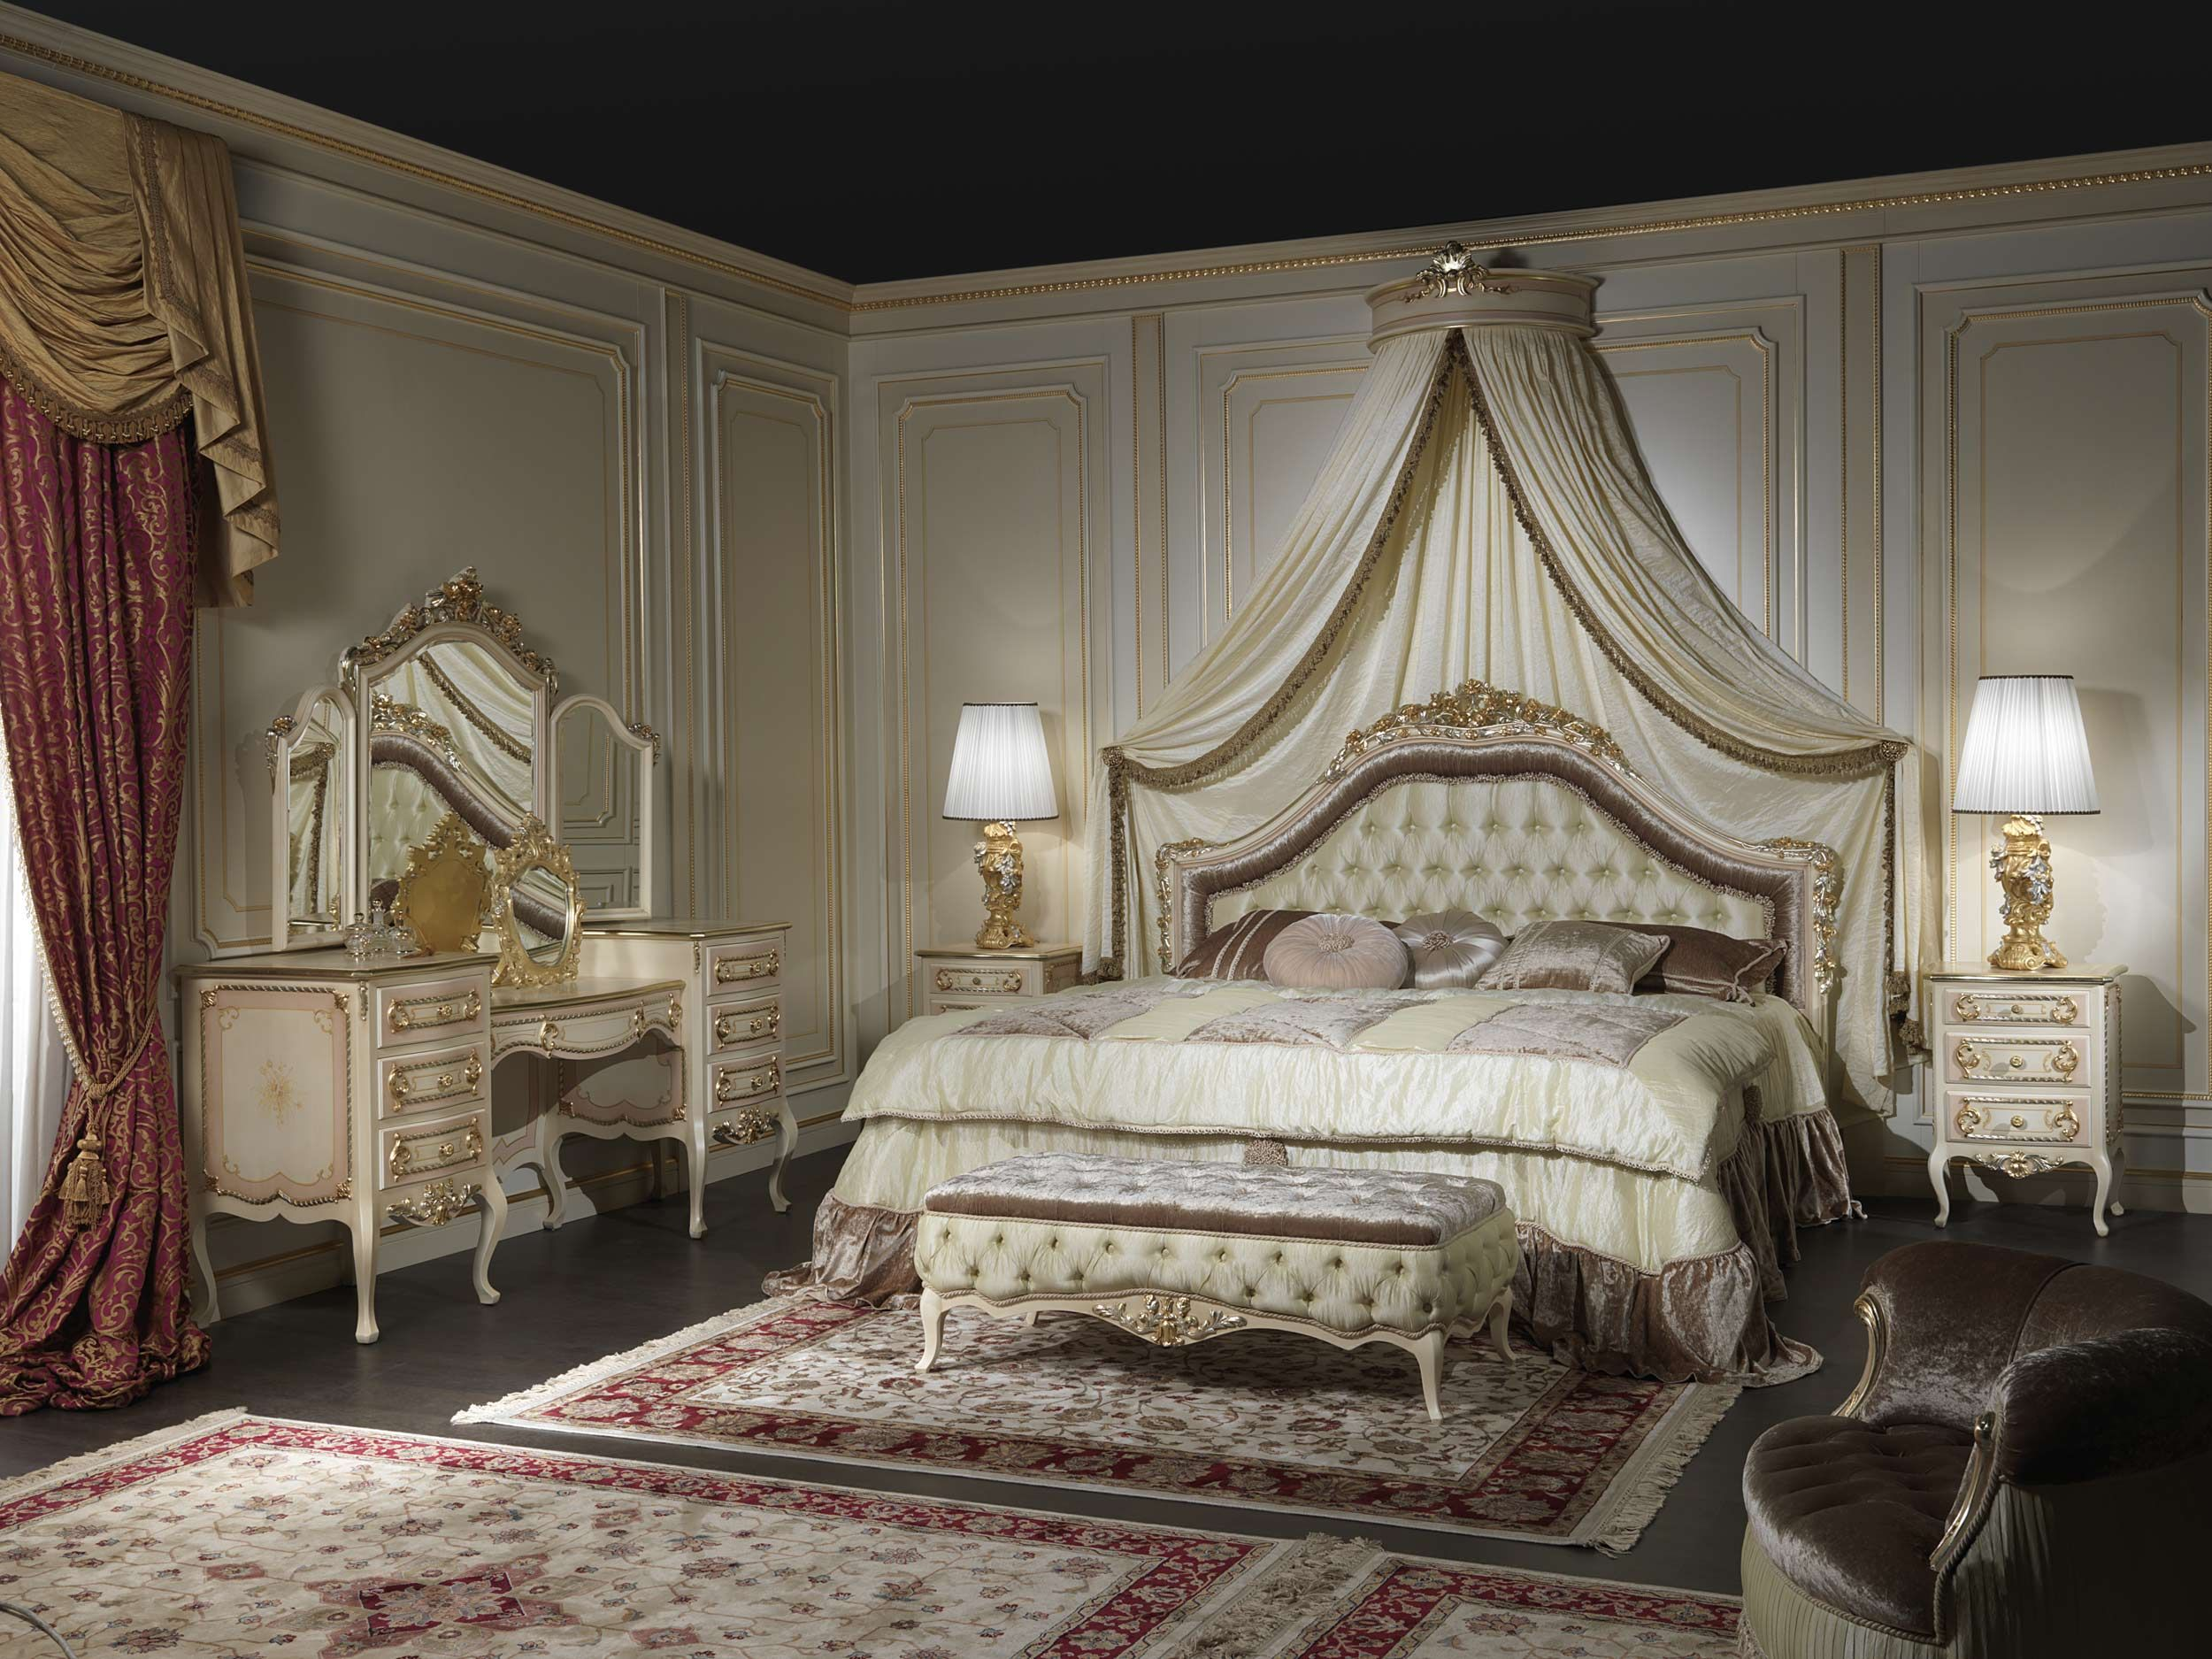 Bedroom furniture classic style louis xv from the handmade luxury